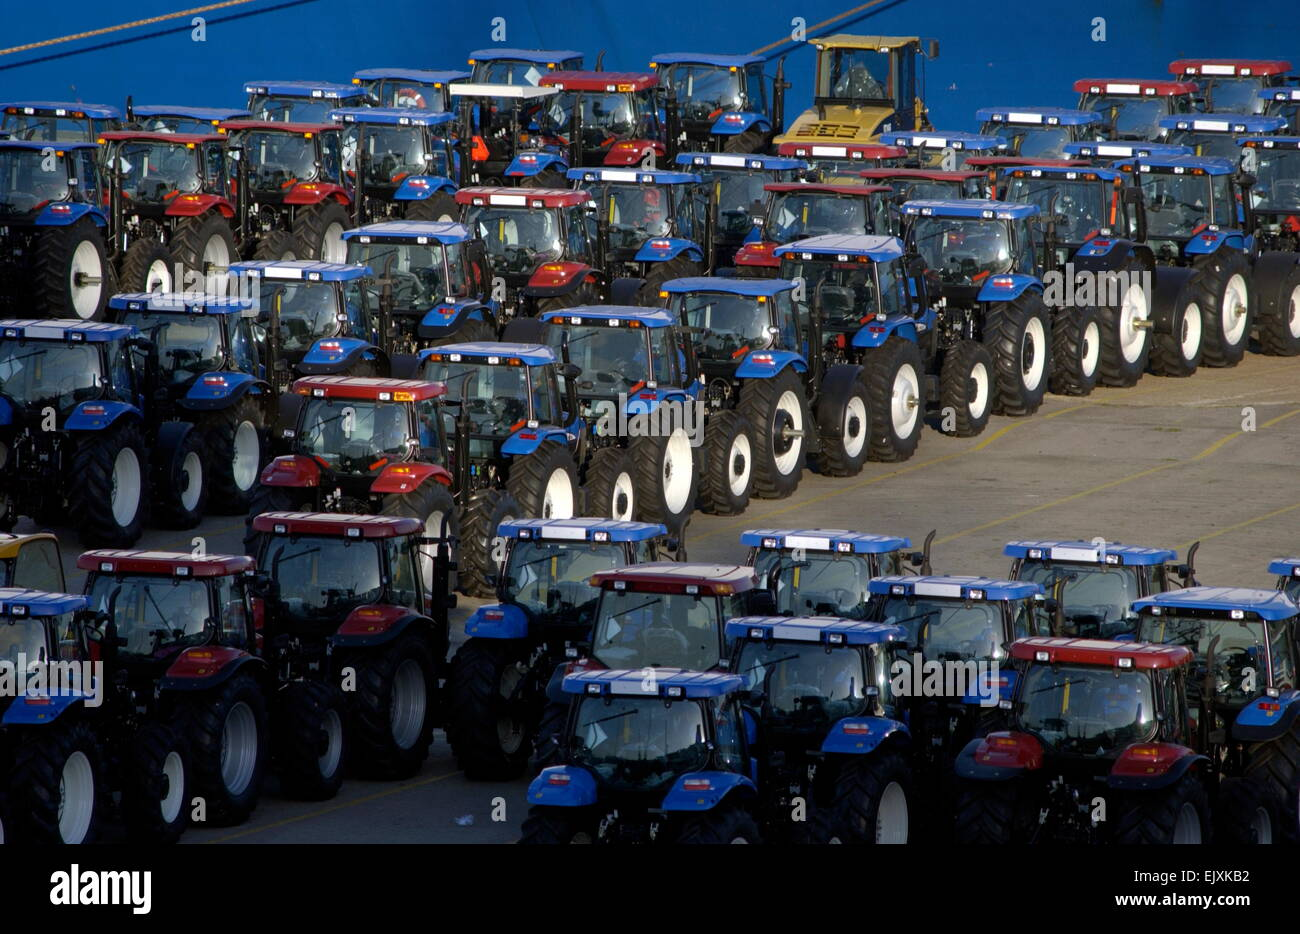 AJAXNETPHOTO - 13 OCT 2006 - SOUTHAMPTON, ENGLAND -TRACTOR IMPORTS PARKED ON THE QUAY. PHOTO:JONATHAN EASTLAND/AJAX - Stock Image